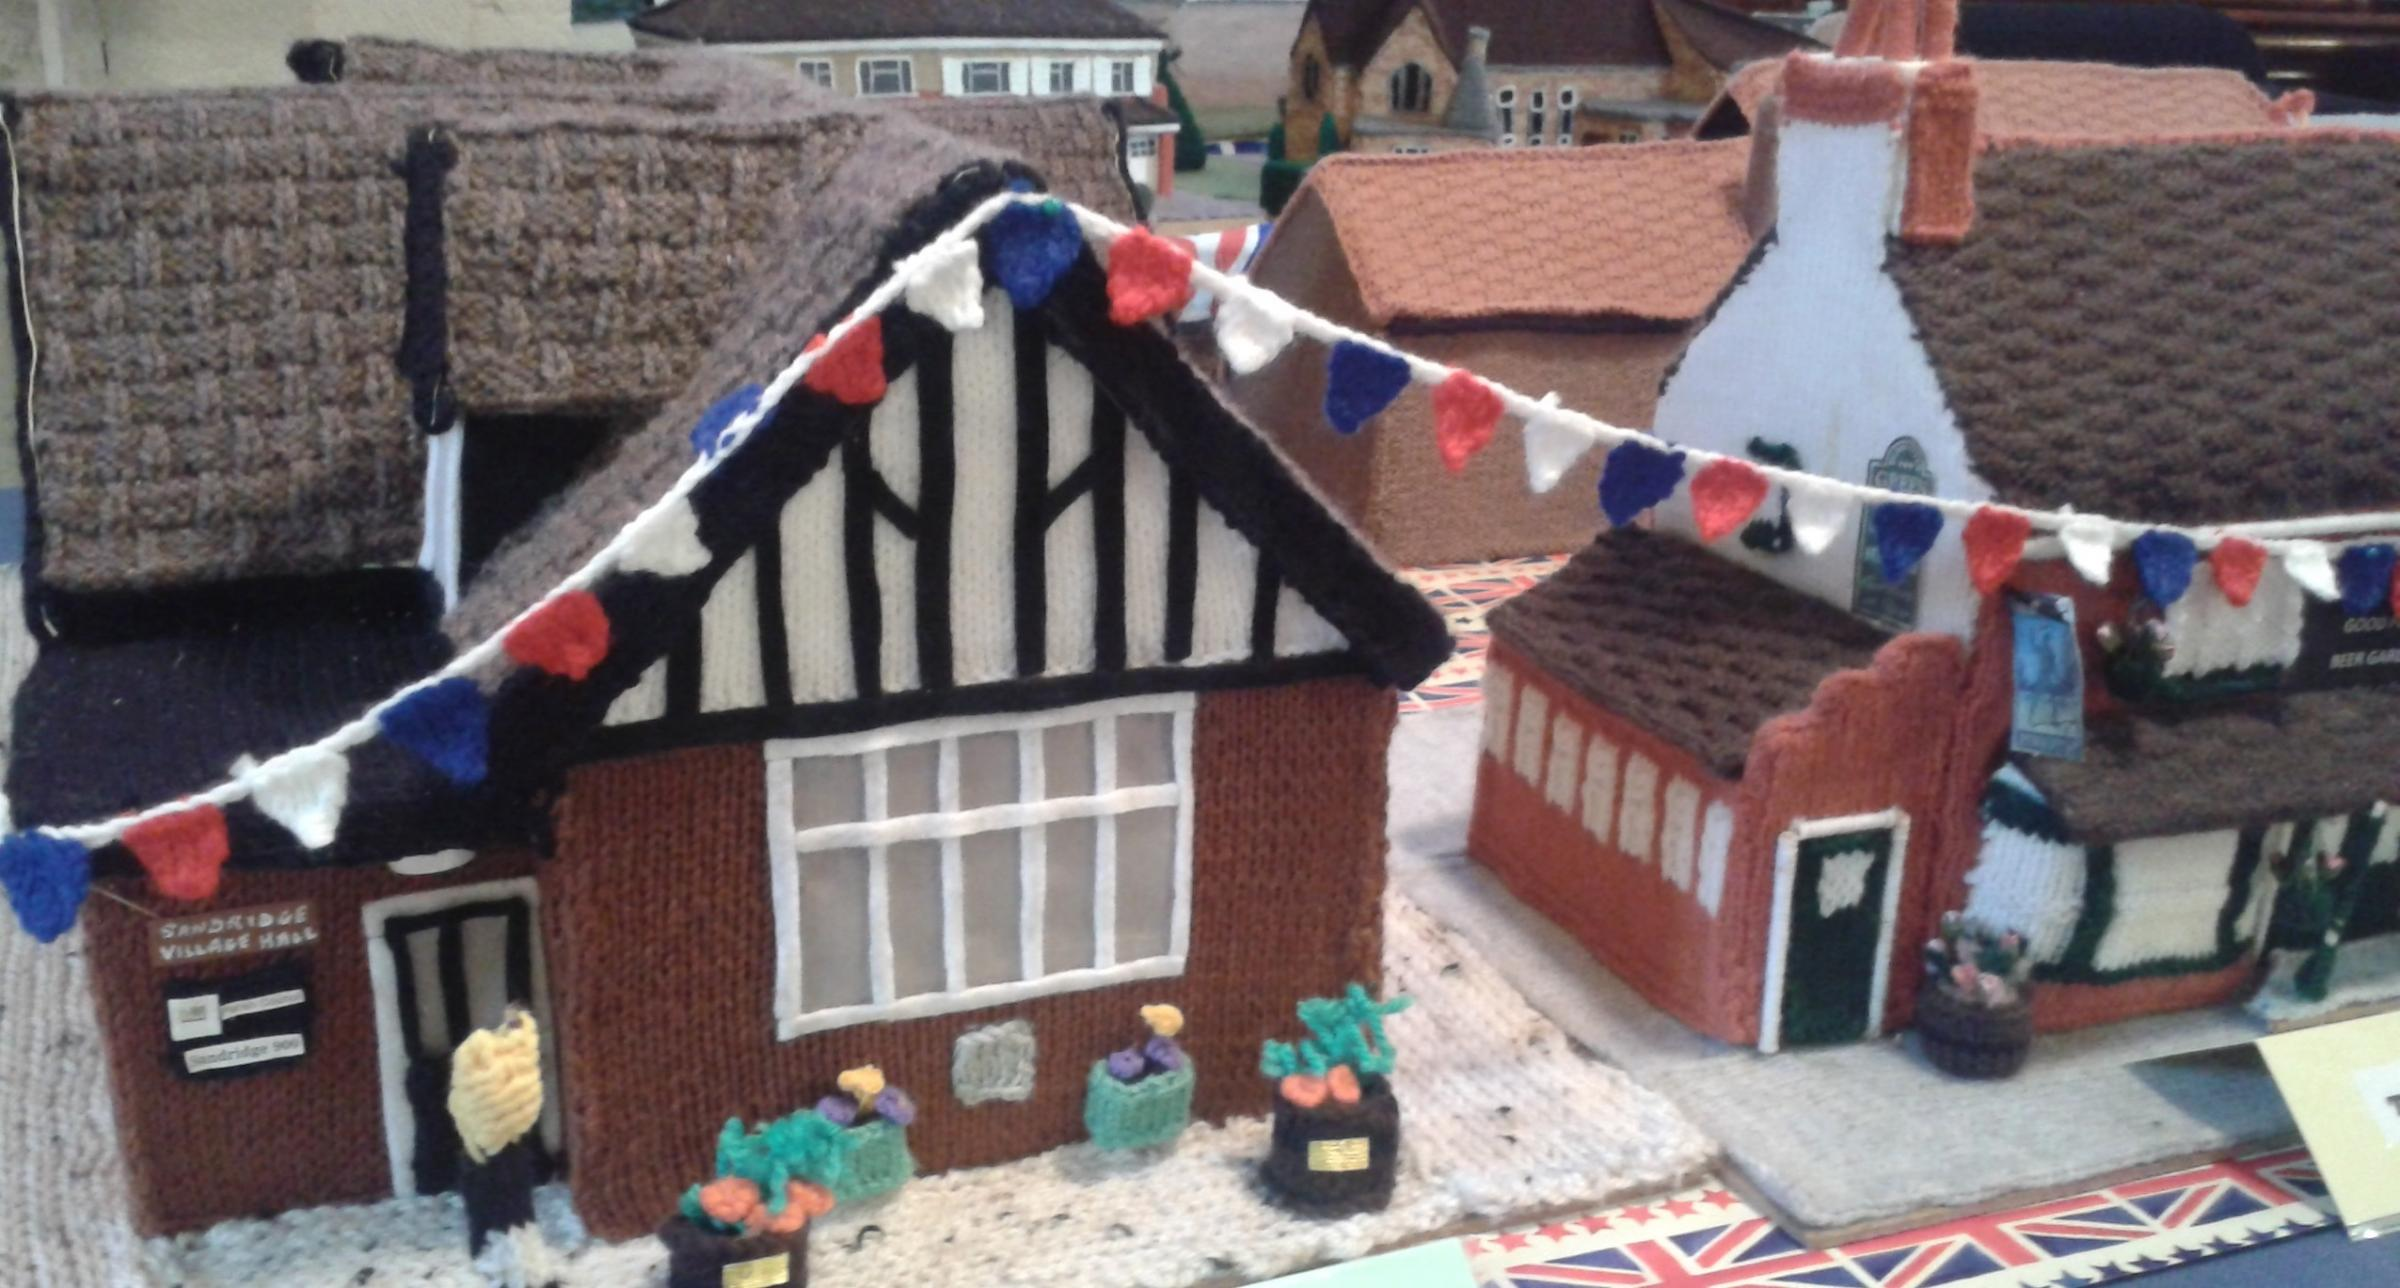 The knitted village will be on show at the St Leonard's Church summer fete on Sunday June 24.